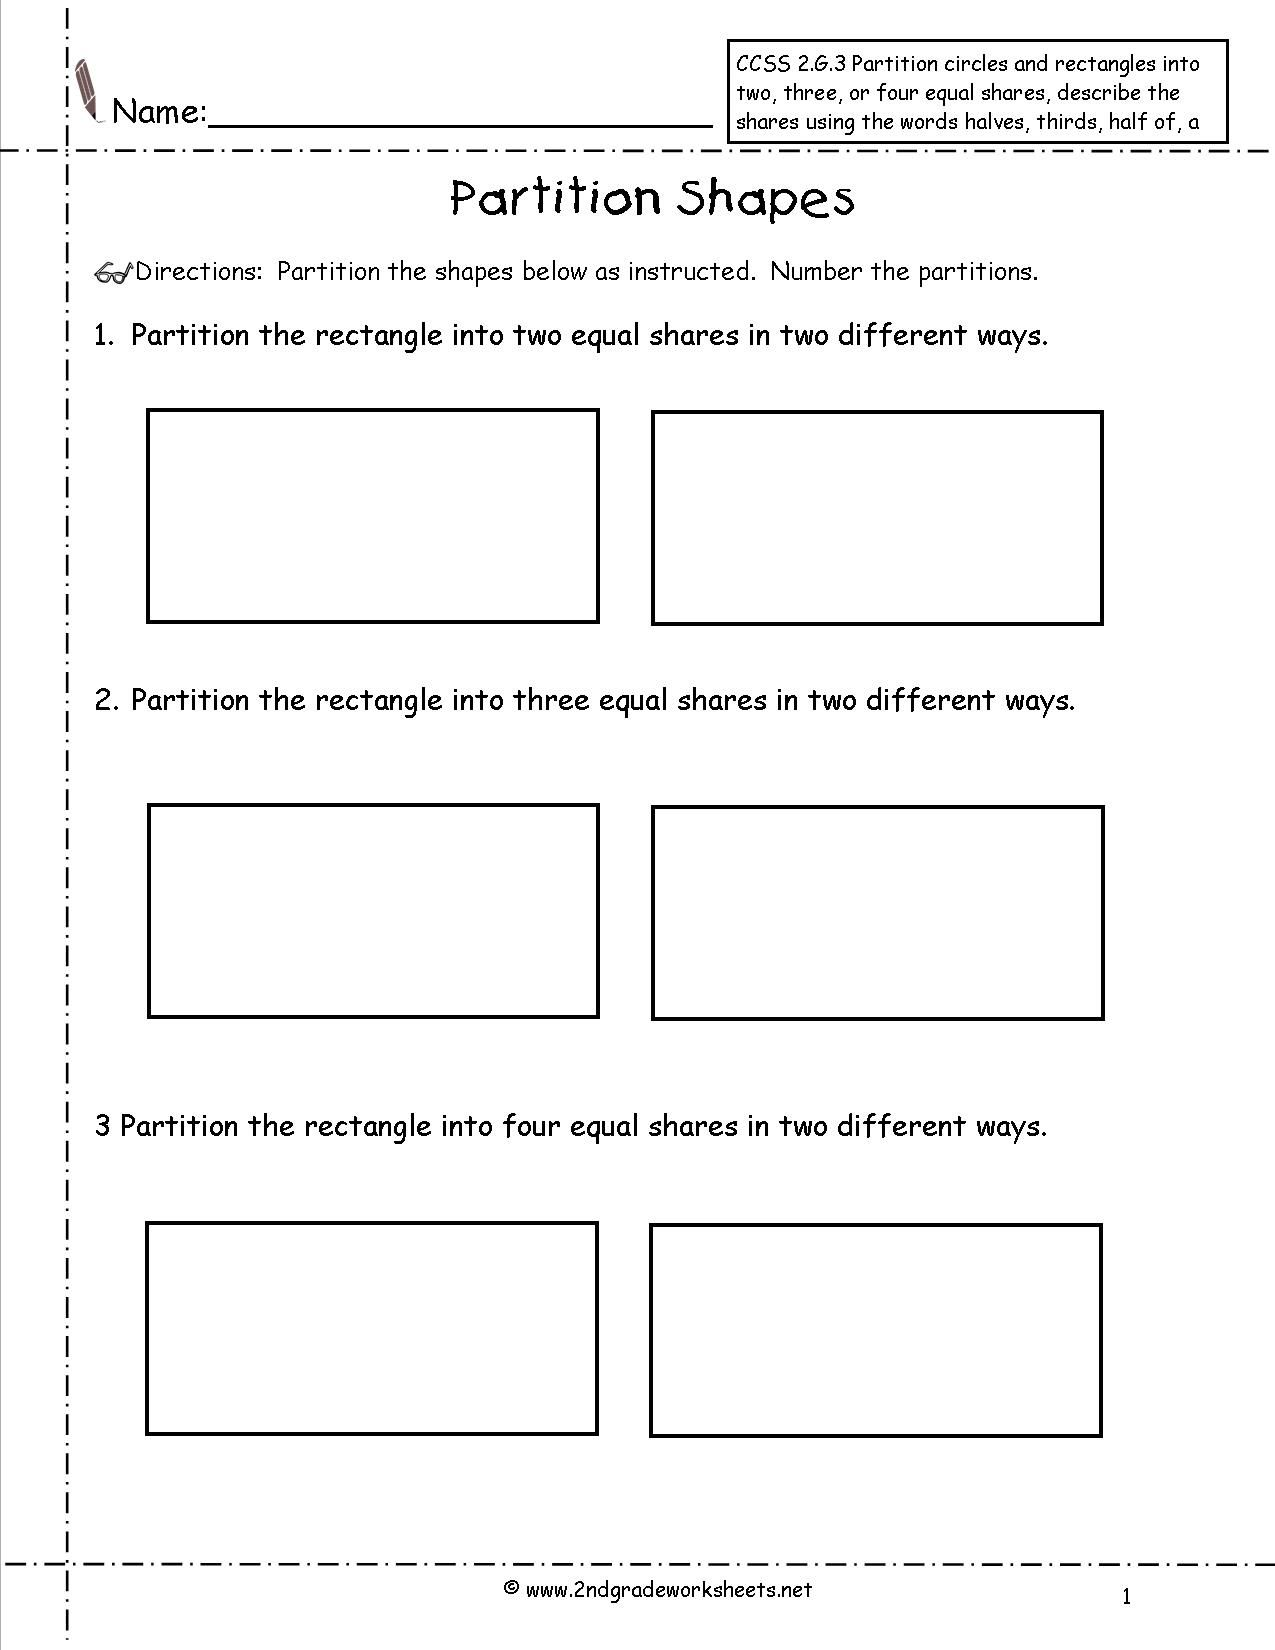 partitioning shapes into equal parts worksheet Google Search – Partitioning Decimals Worksheet